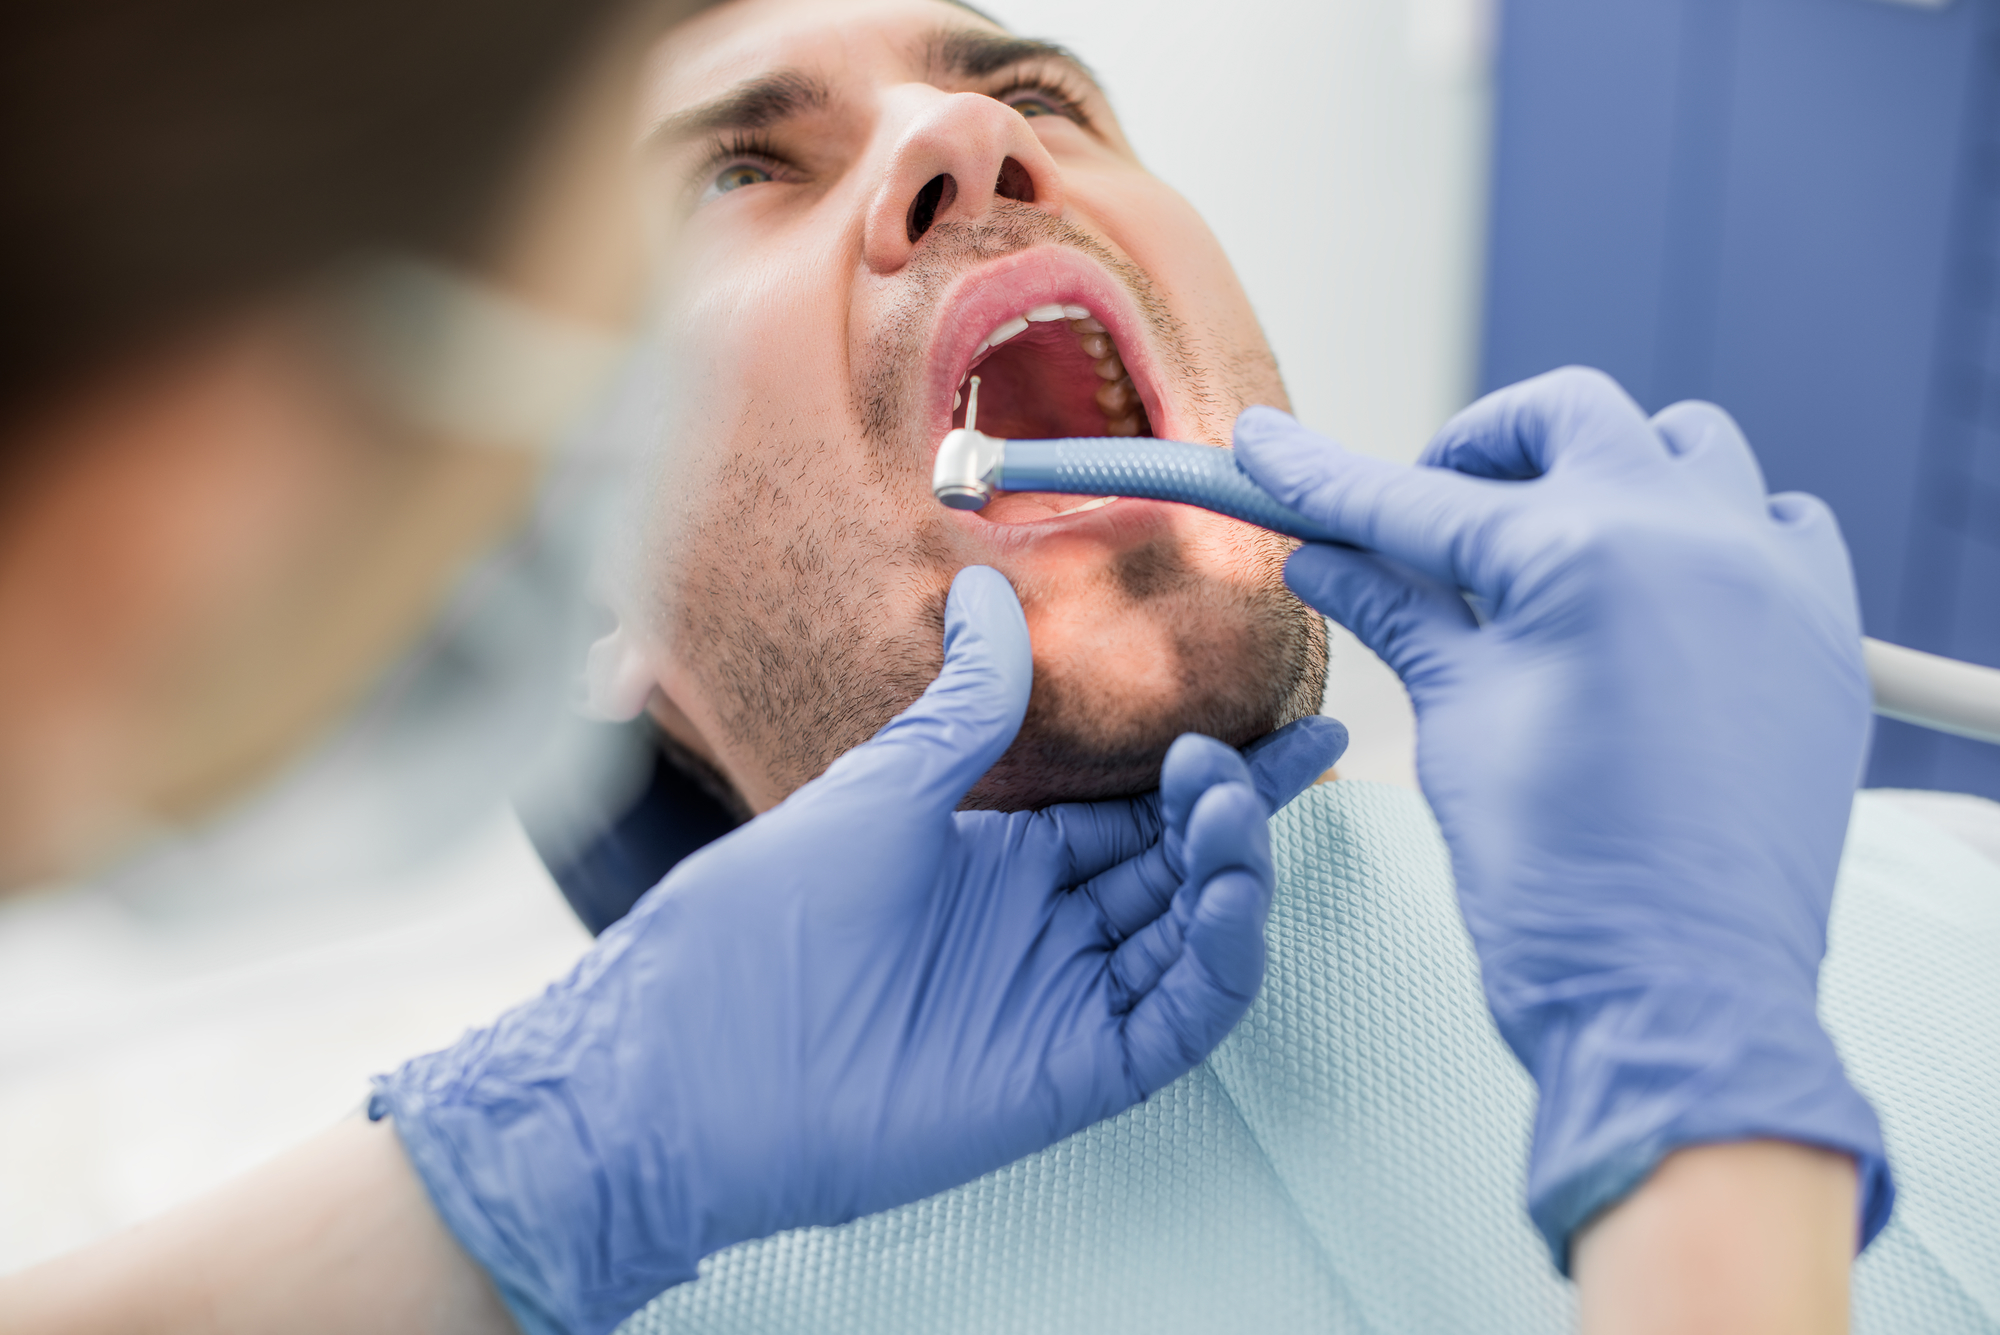 who offers the best oral cancer screening pembroke pines?